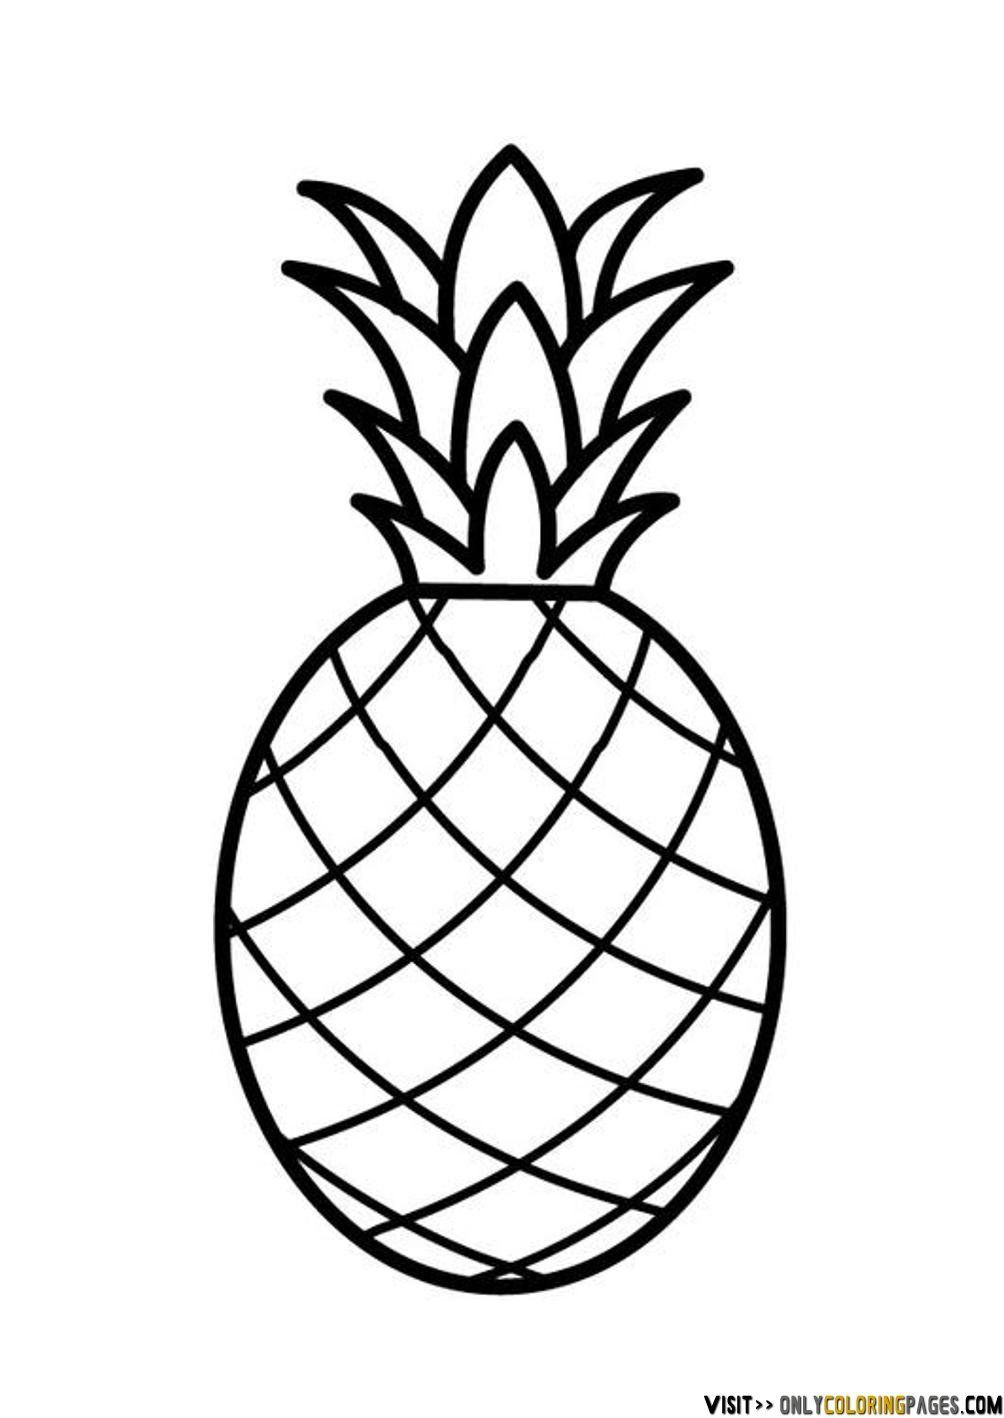 Pineapple clipart black and white 2 » Clipart Portal.